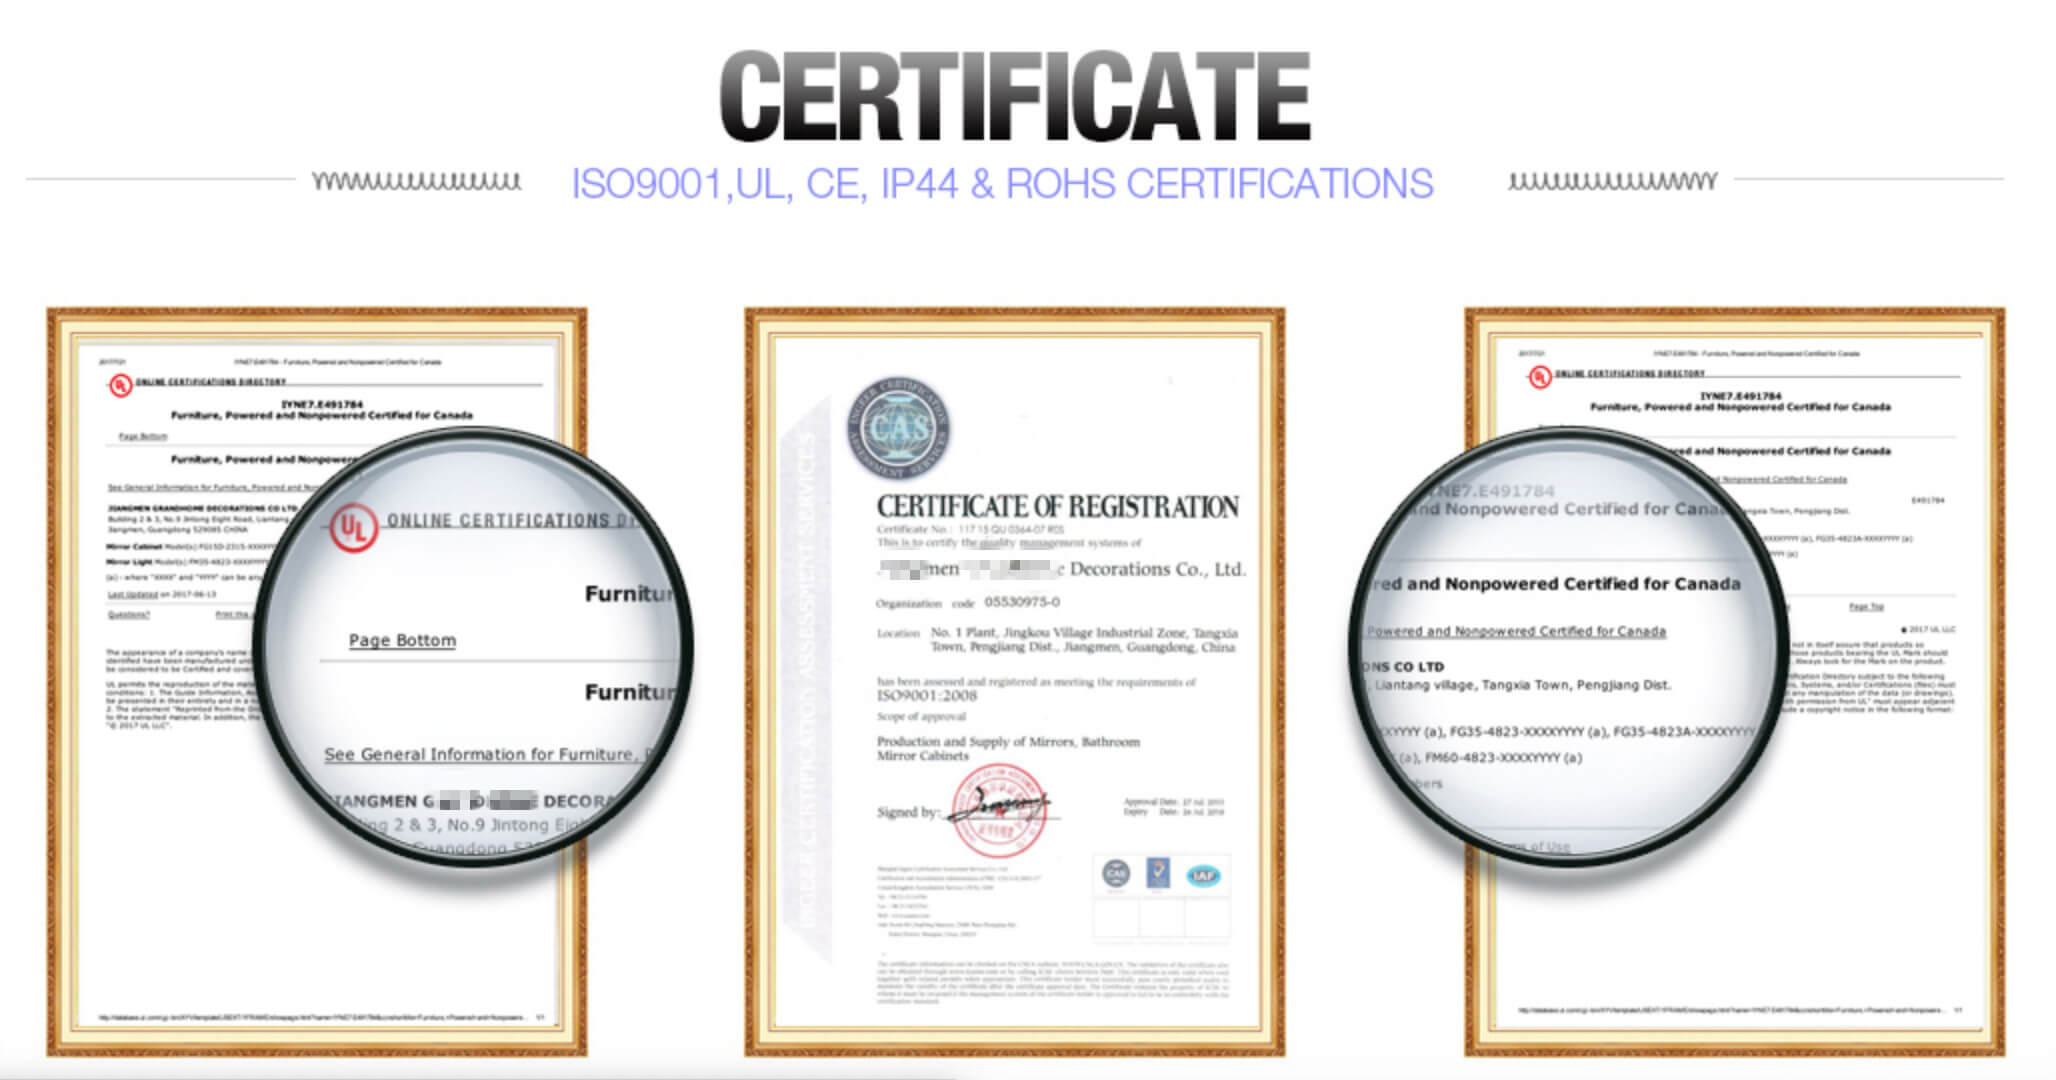 Backlit Mirror Suppliers CERTIFICATIONS